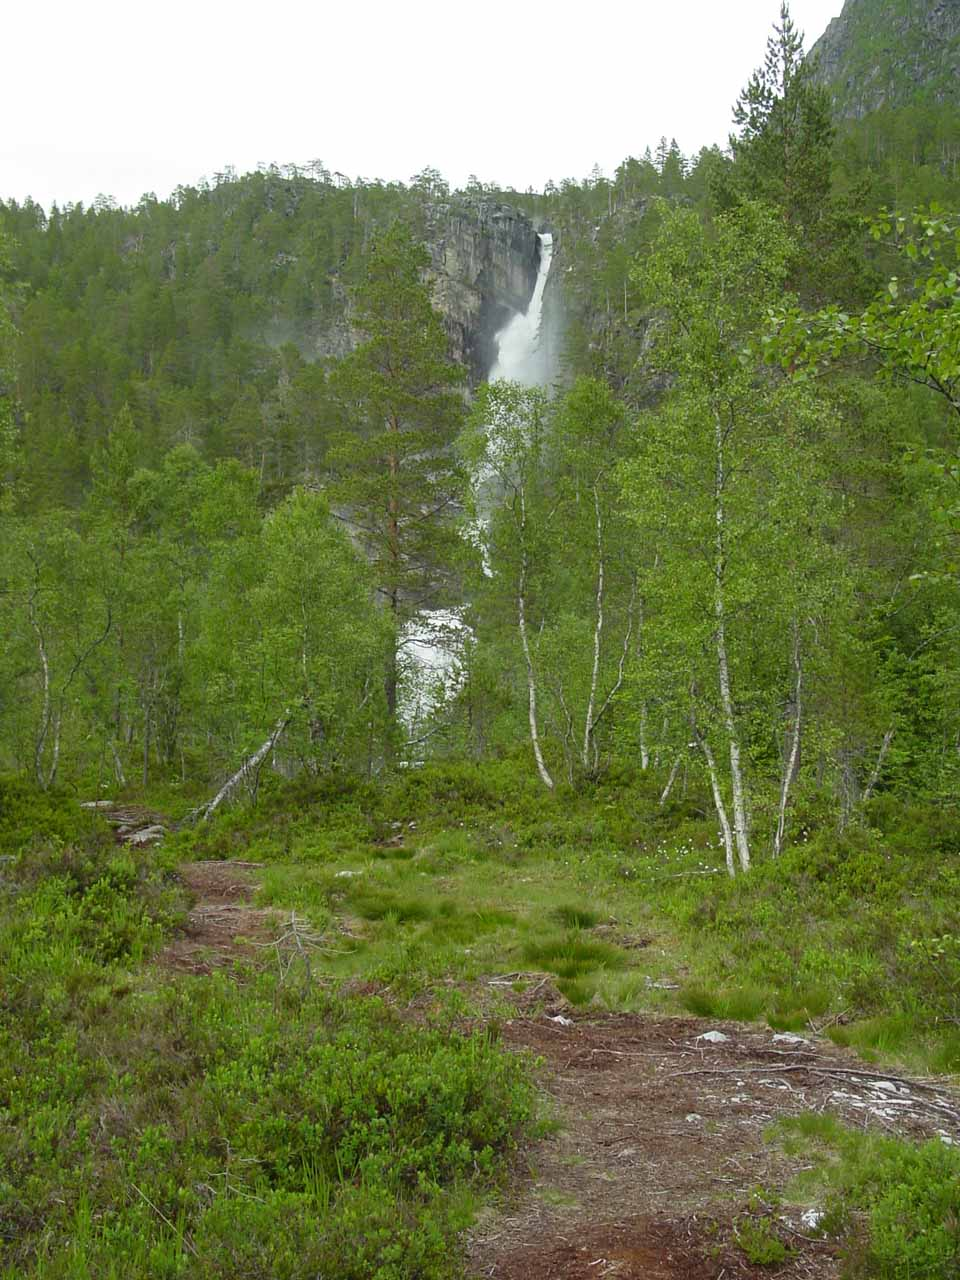 The lower part of Nauståfossen started to have its view obstructed by trees